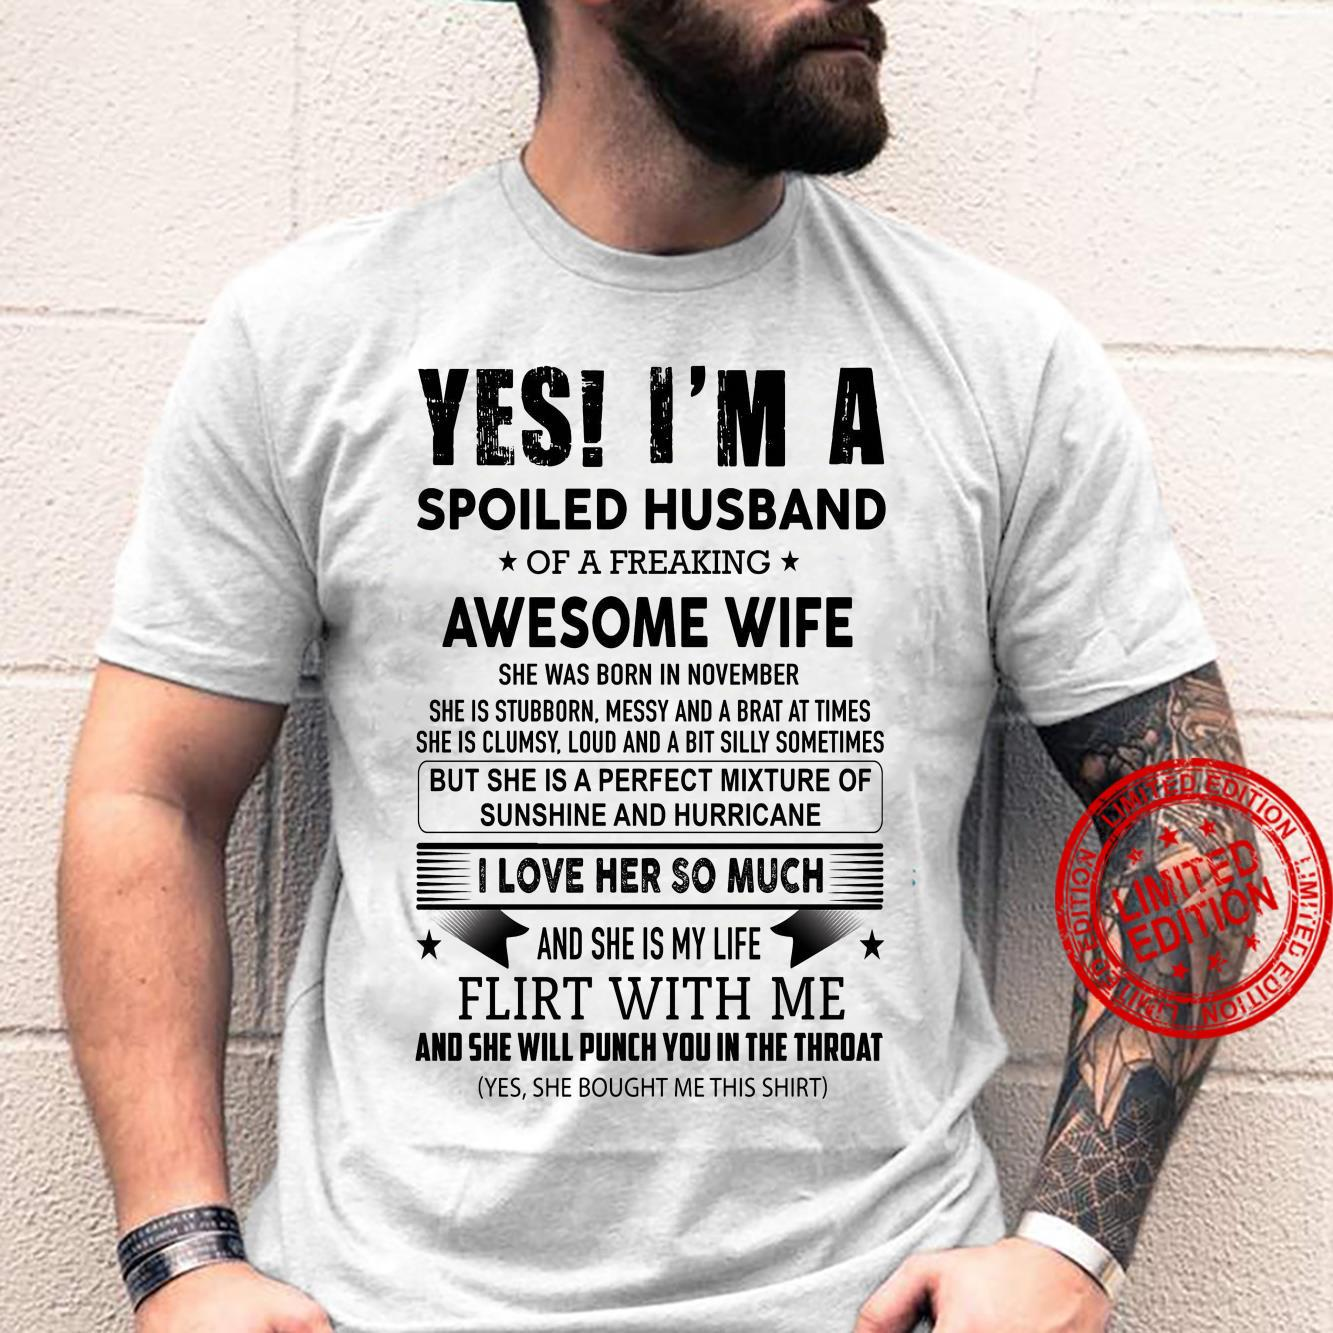 Yes I'm A Spoiled Husband Of A Freaking Awesome Wife I Love Her So Much And She Is My Life Flirt With Me And She Will Punch You In The Throat Shirt